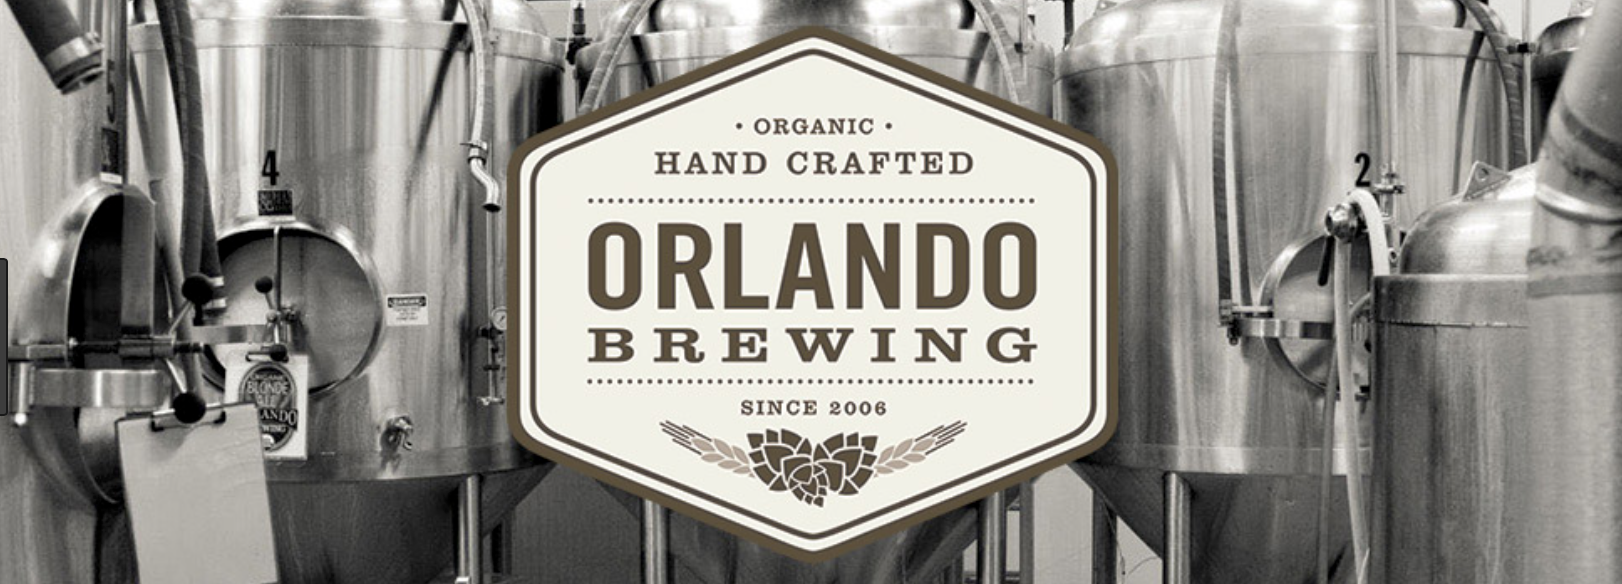 things-to-do-in-orlando-brewery